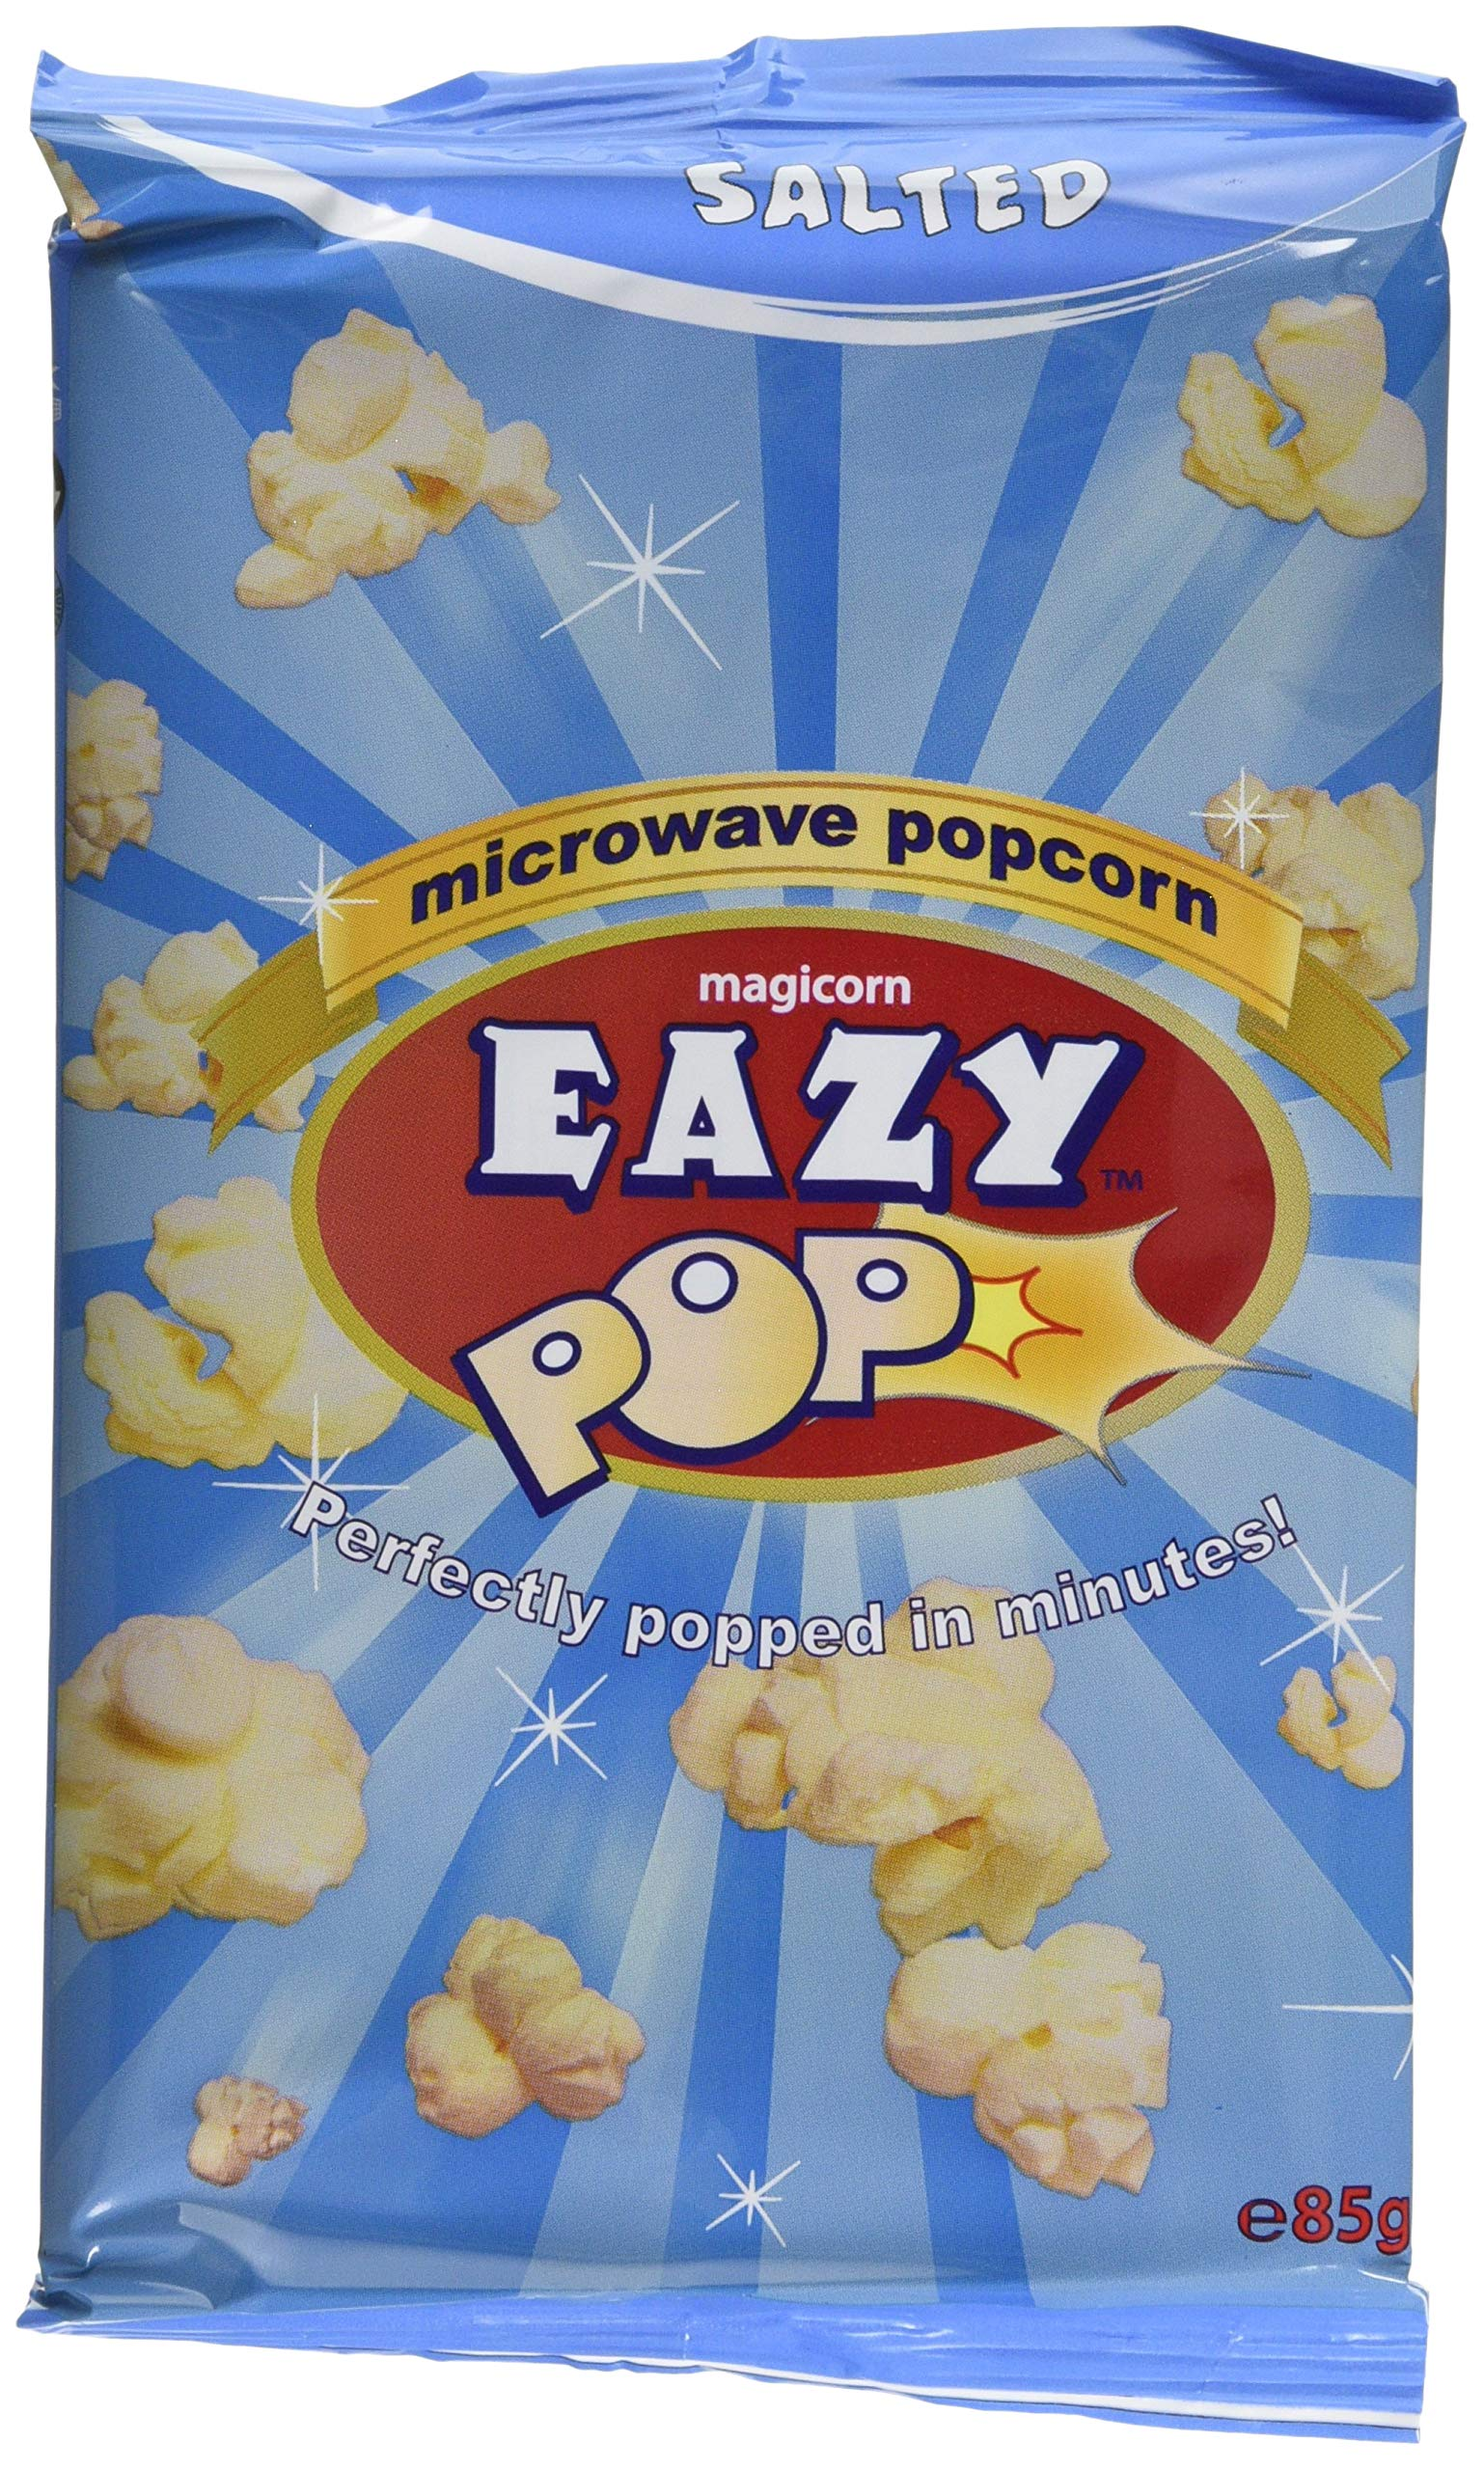 Eazypop Microwave Popcorn Salted Flavour, 16 X 85g